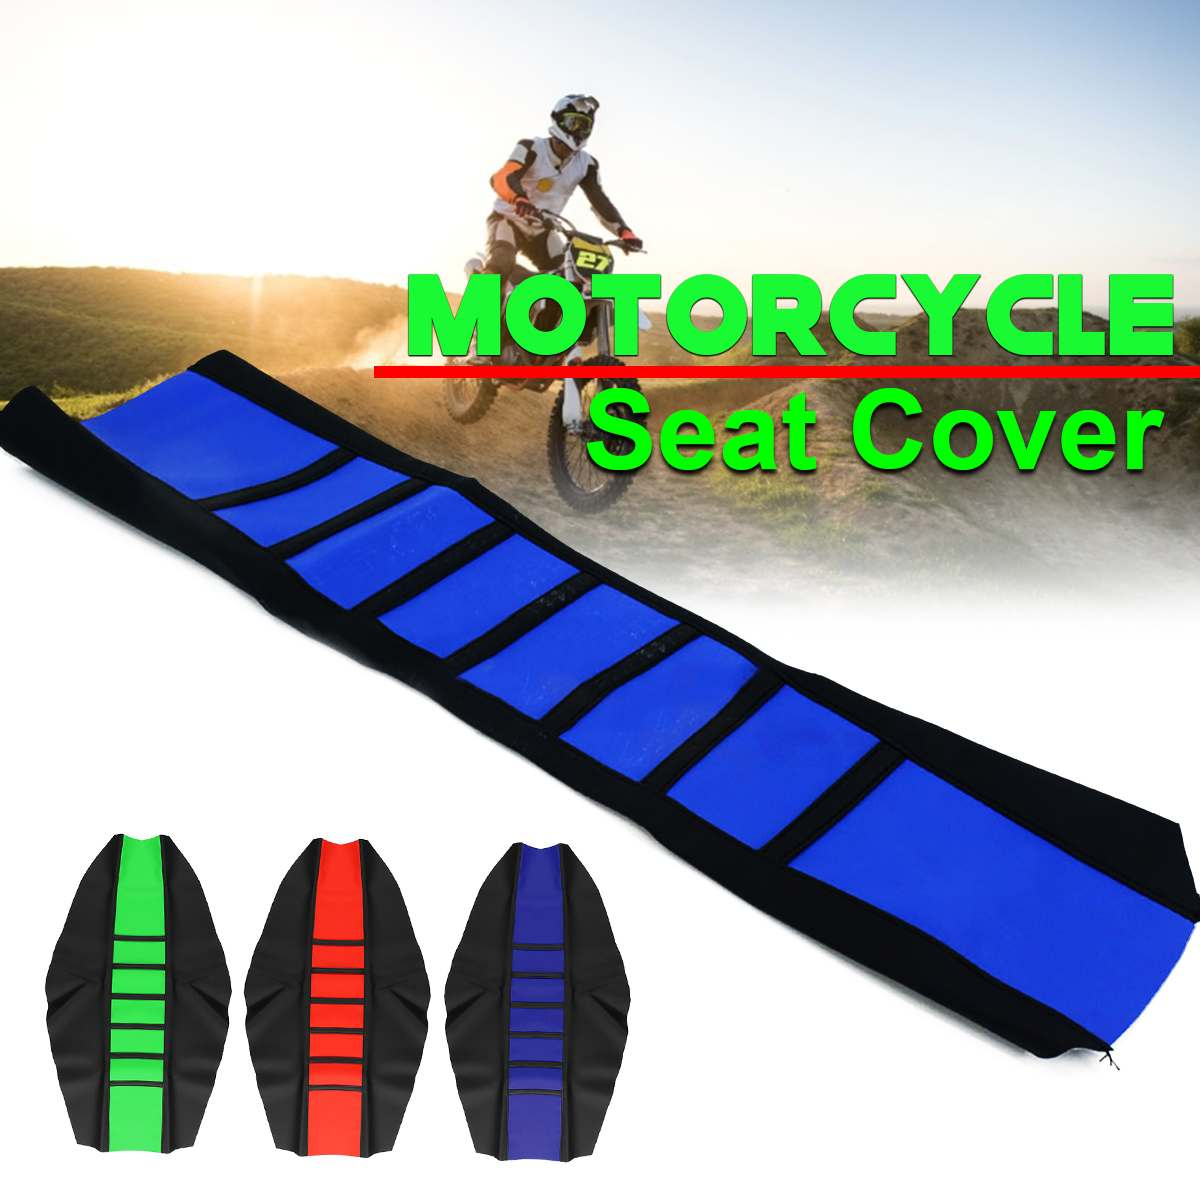 AUDEW Seat-Cover Vinyl-Material Motorcycles Dirt-Bike Wear-Resistant Off-Road-Gripper title=